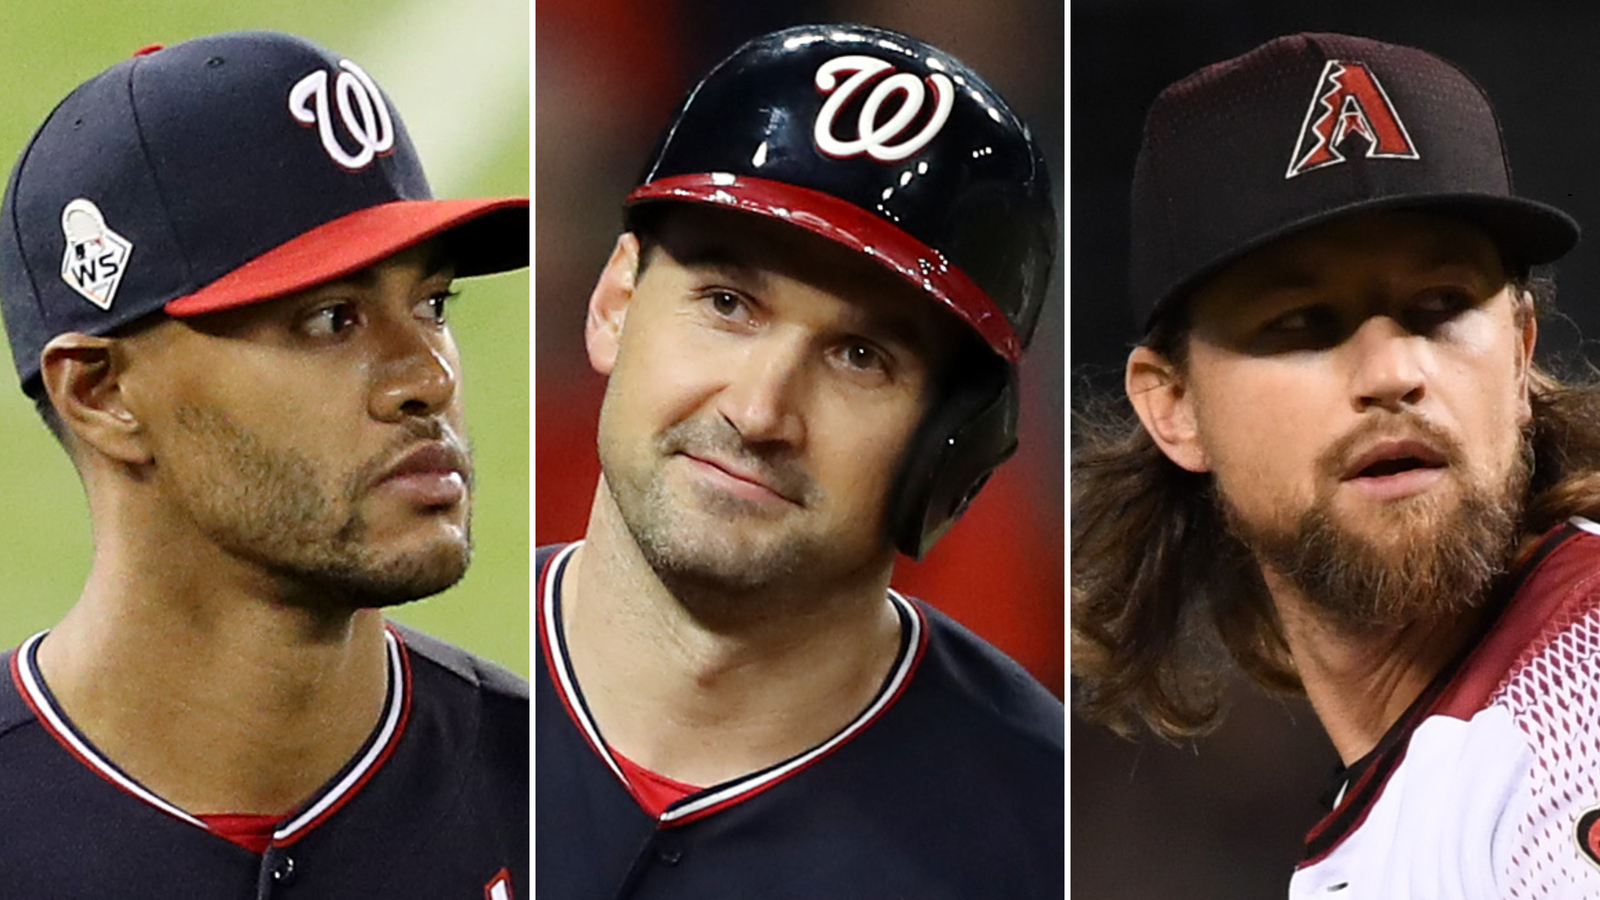 Joe Ross, Ryan Zimmerman, and Mike Leake are opting out of the 2020 MLB season. (Getty Images)